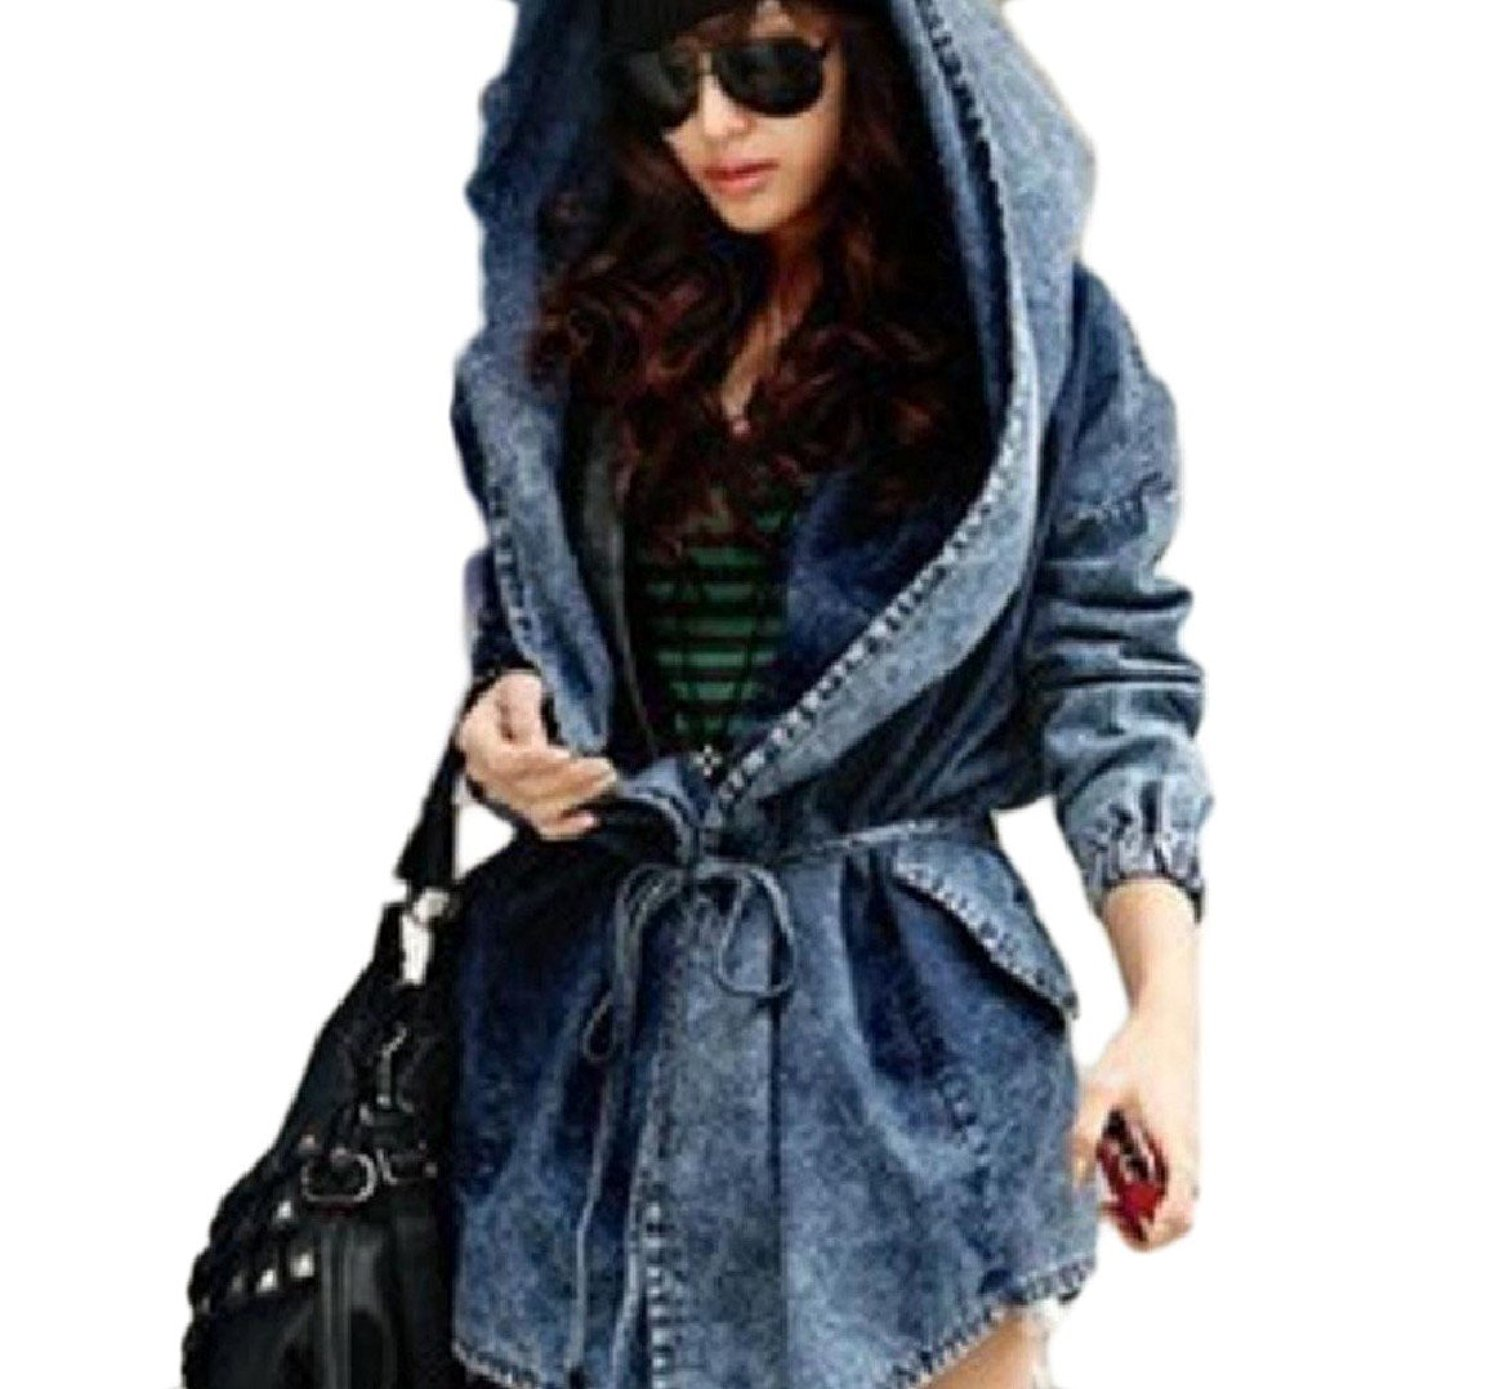 6f5602caa1 Get Quotations · Tootless-Women Caftan Poncho Smocked Waist Hooded Denim  Plus-Size Comfy Light Jacket Coat